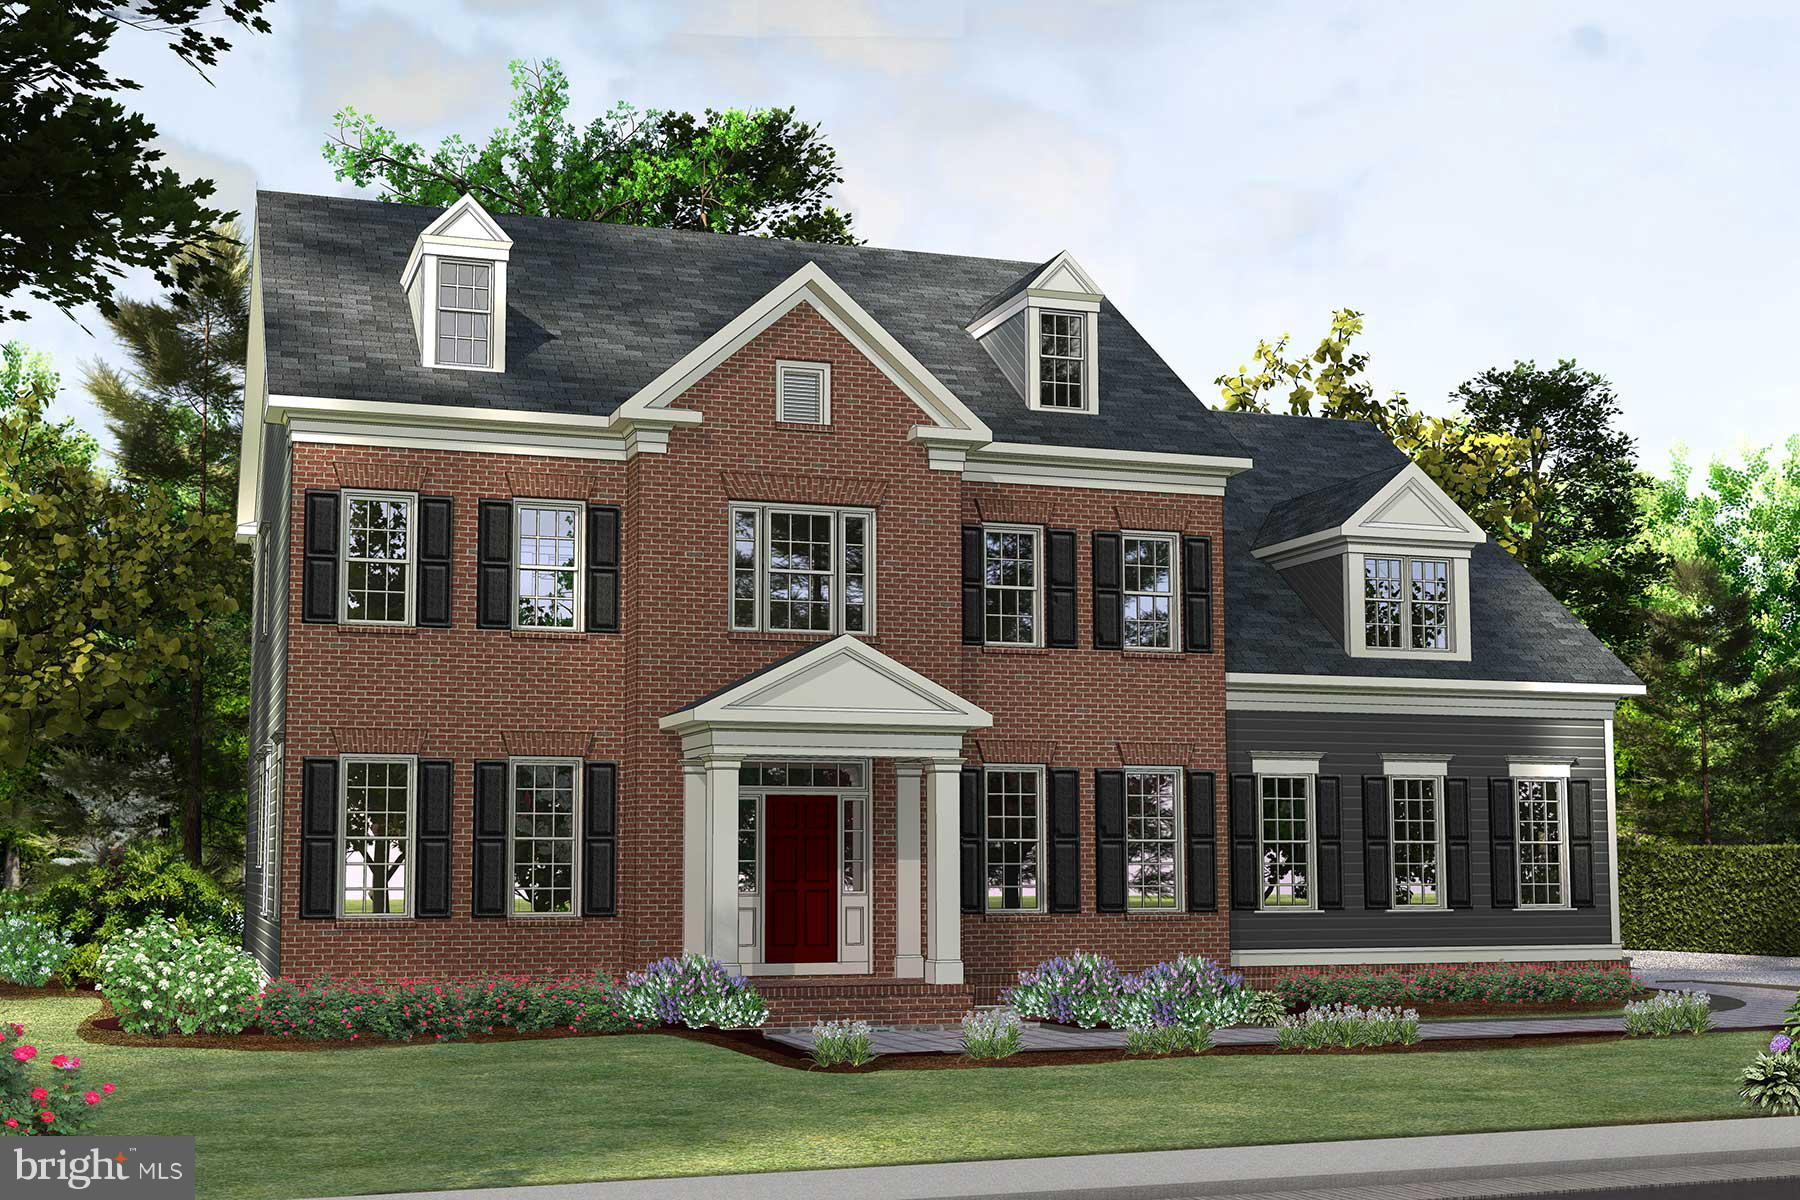 LOT 22 PLEASANT SPRINGS COURT, HIGHLAND, MD 20777